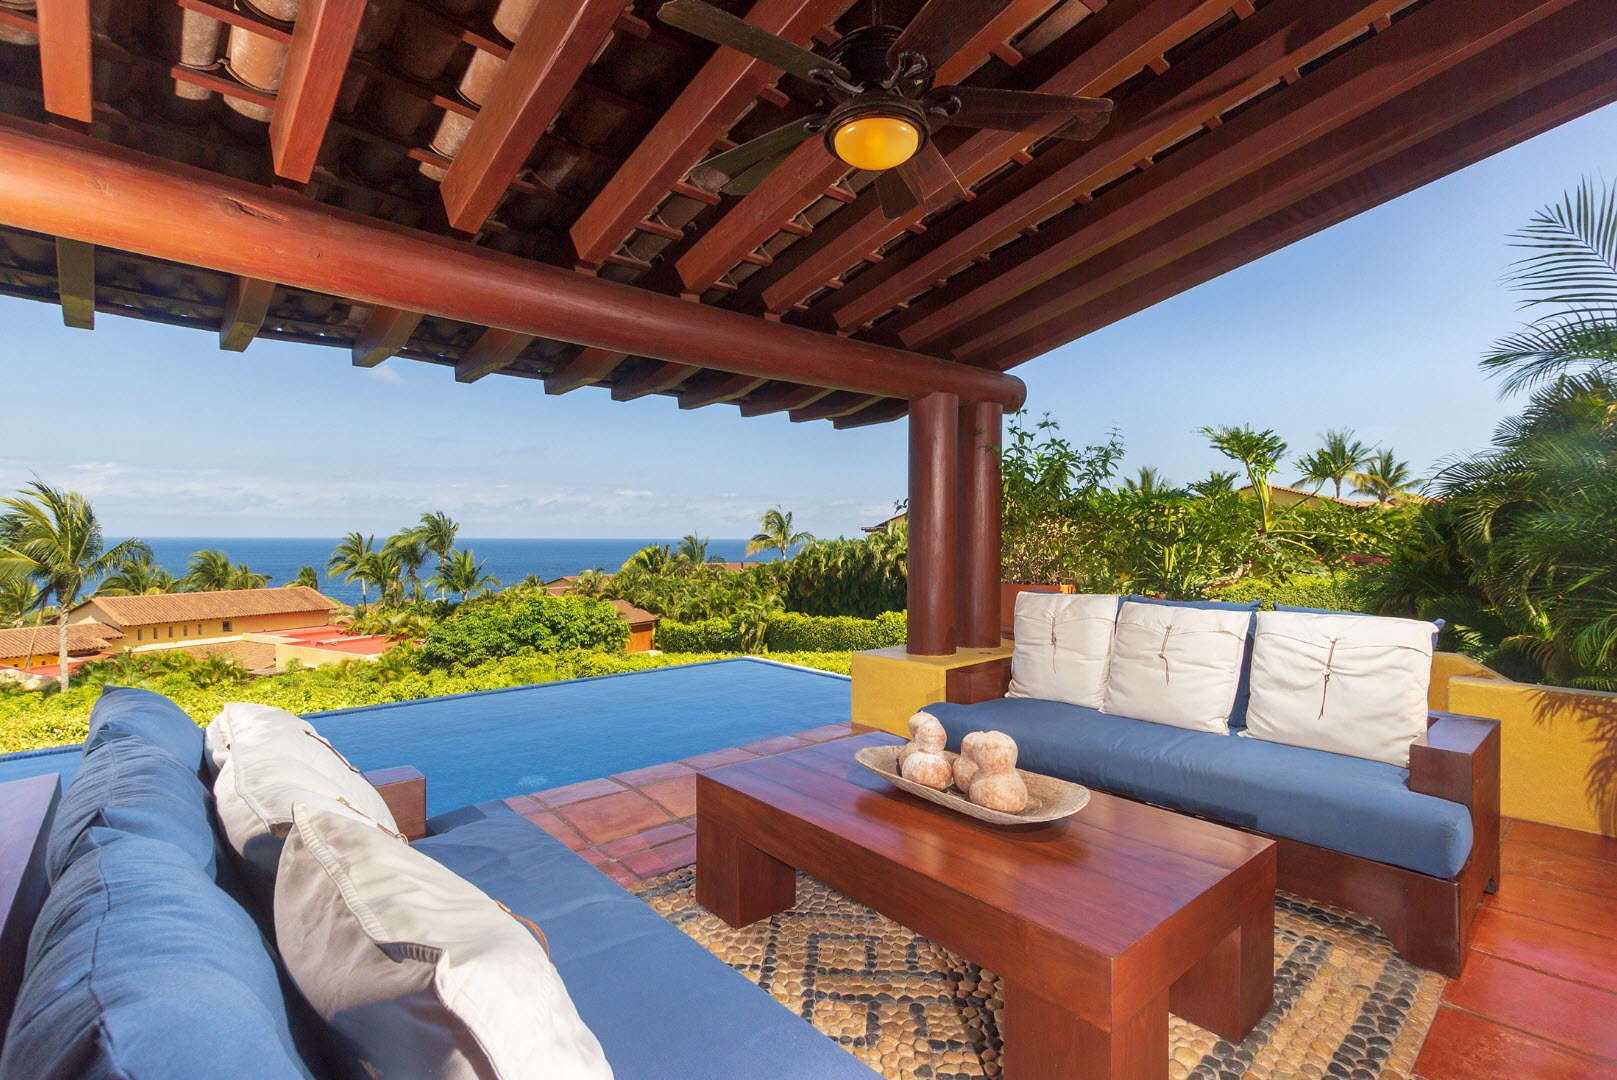 Luxury vacation rentals mexico - Punta mita - Four seasons resort punta mita - Villa Mariposa - Image 1/18